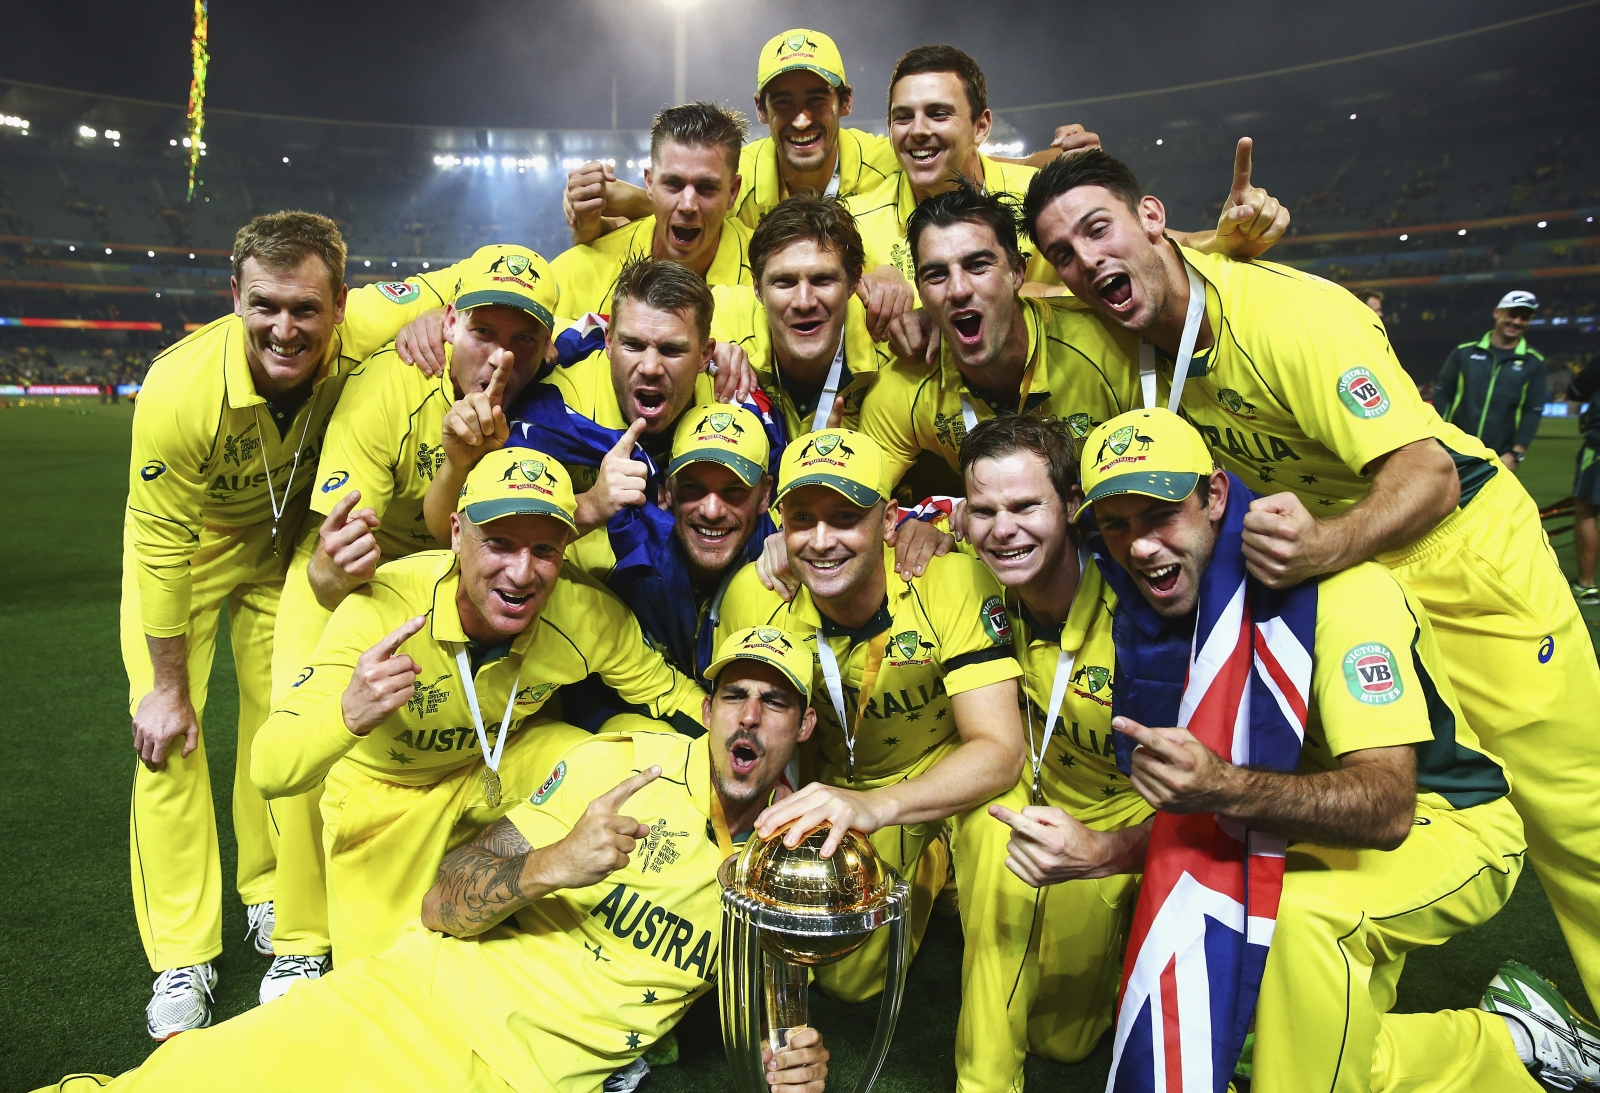 ICC Cricket World Cup 2015: Best performance, match and team of the ...